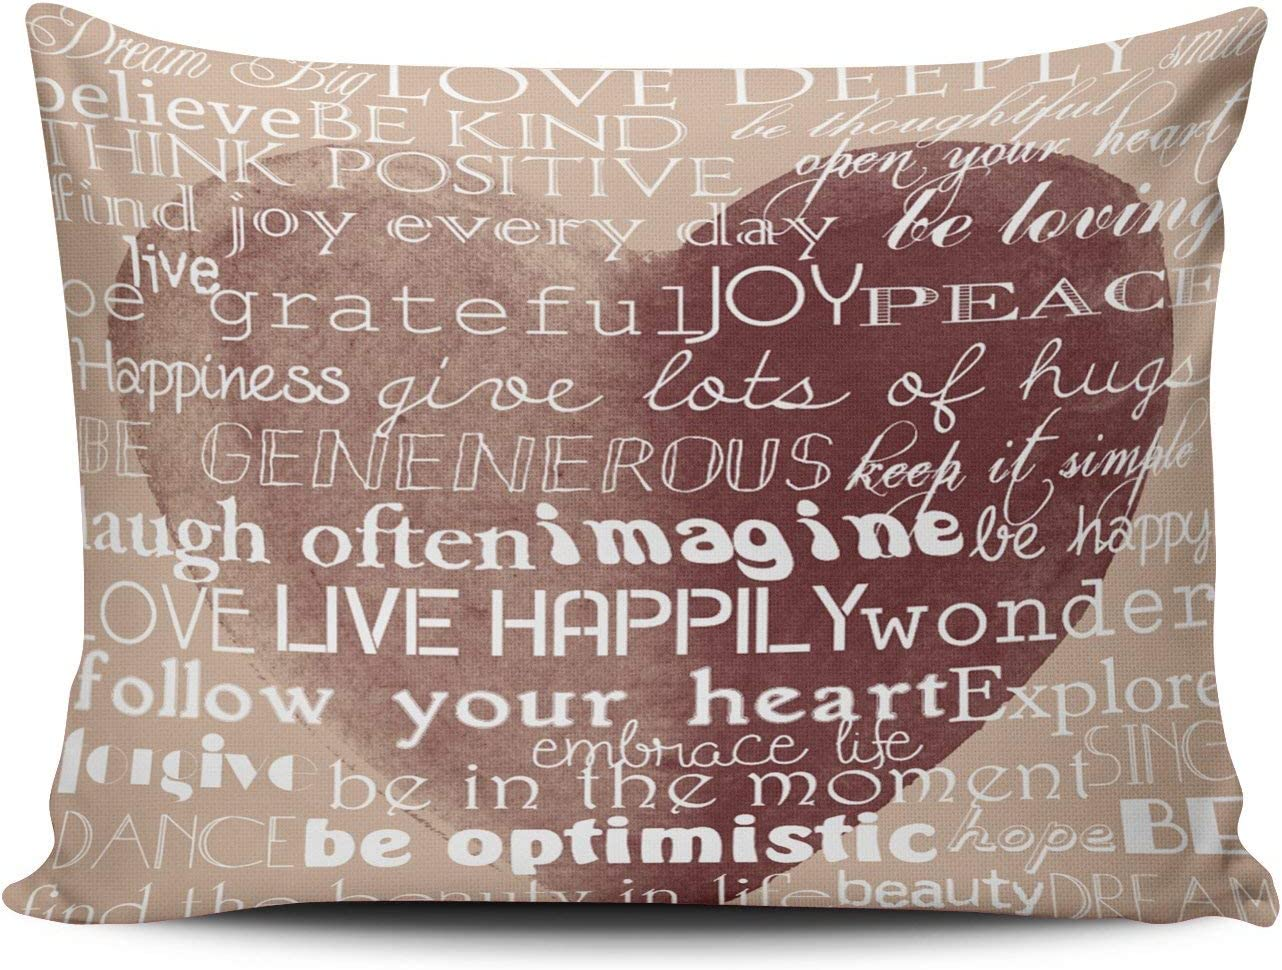 Wulihua Throw Pillow Covers Coral And Brown Inspirational Words Watercolor Heart Queen Outdoor Cushion Cover Pillowcase Size 20x30 Inch One Sided Printed Chic Fashion Design Home Kitchen